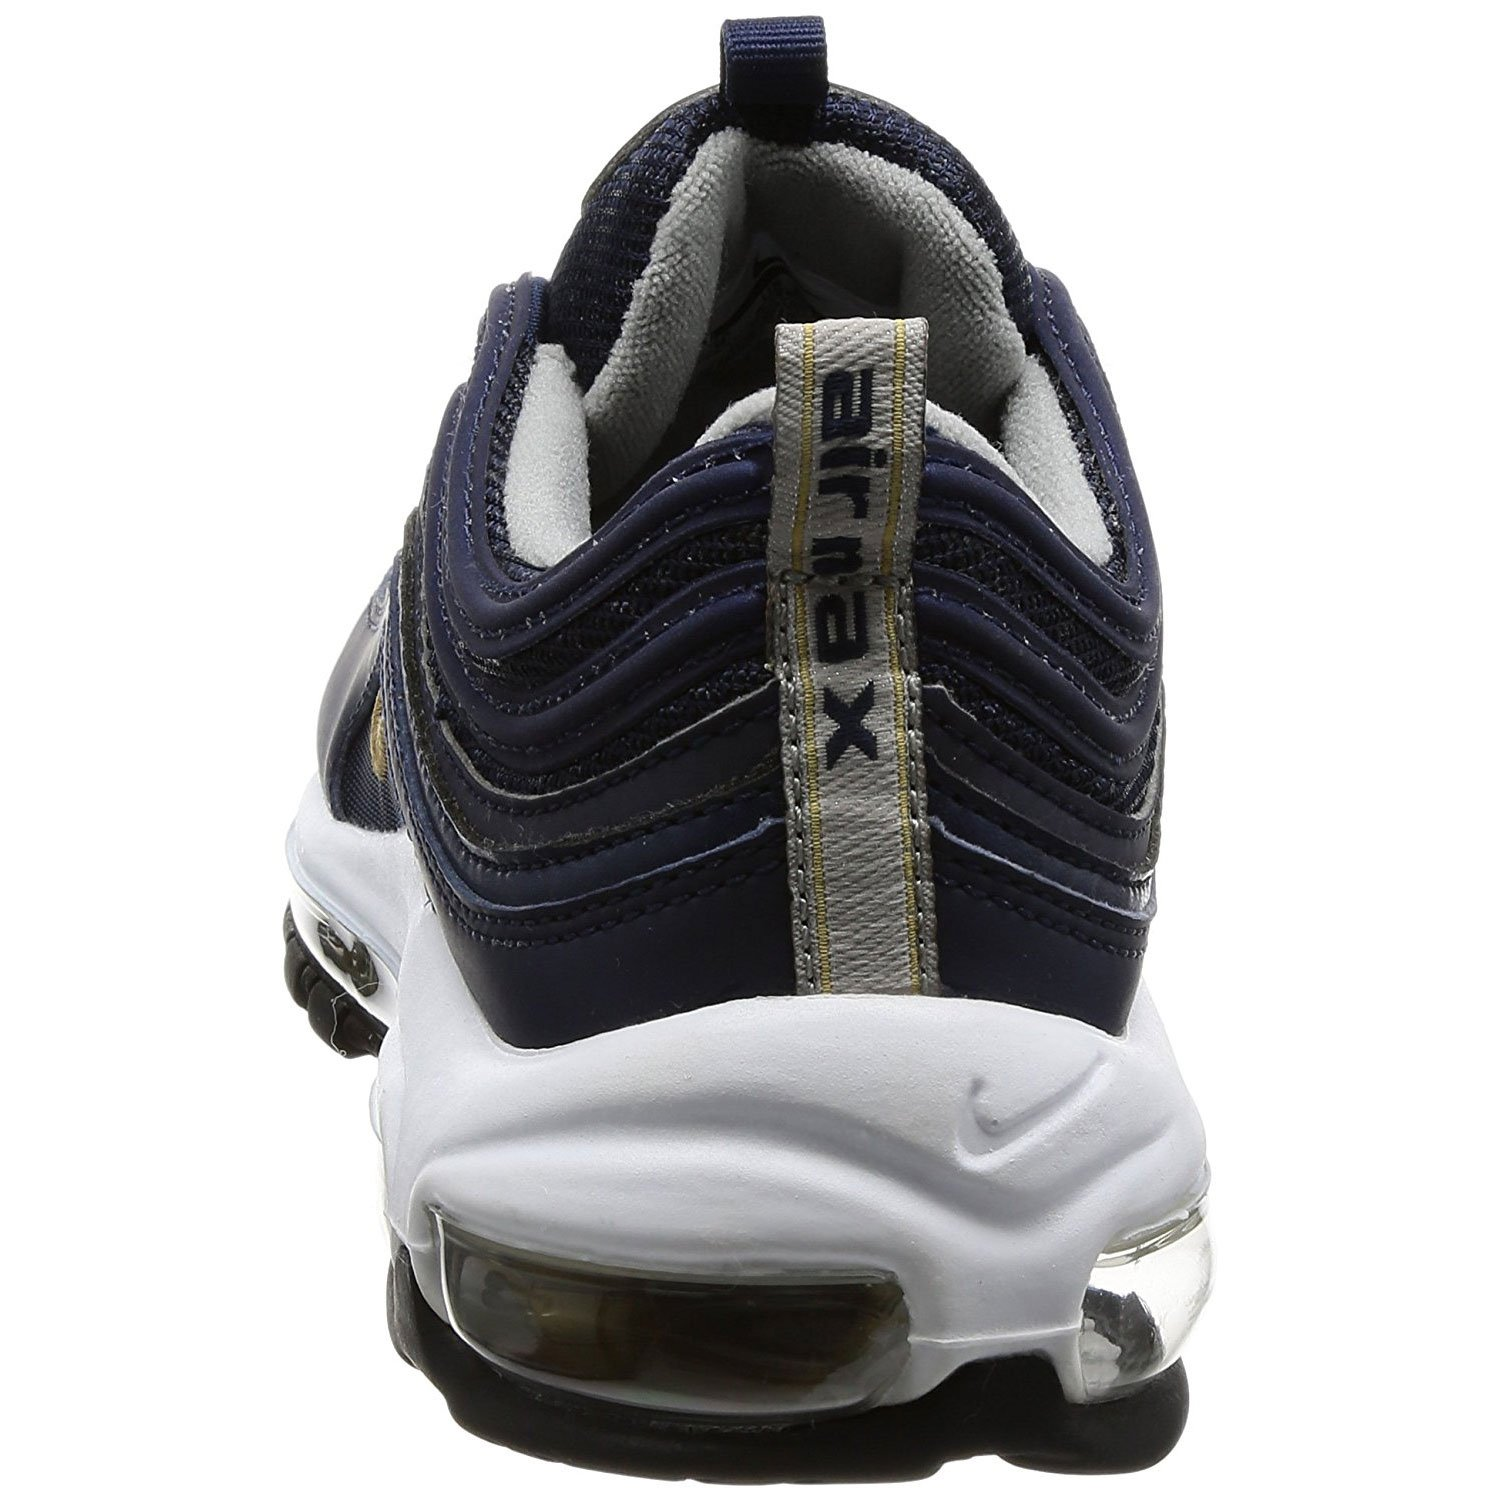 NIKE AIR MAX 97 - SIZE 12 US by NIKE (Image #3)